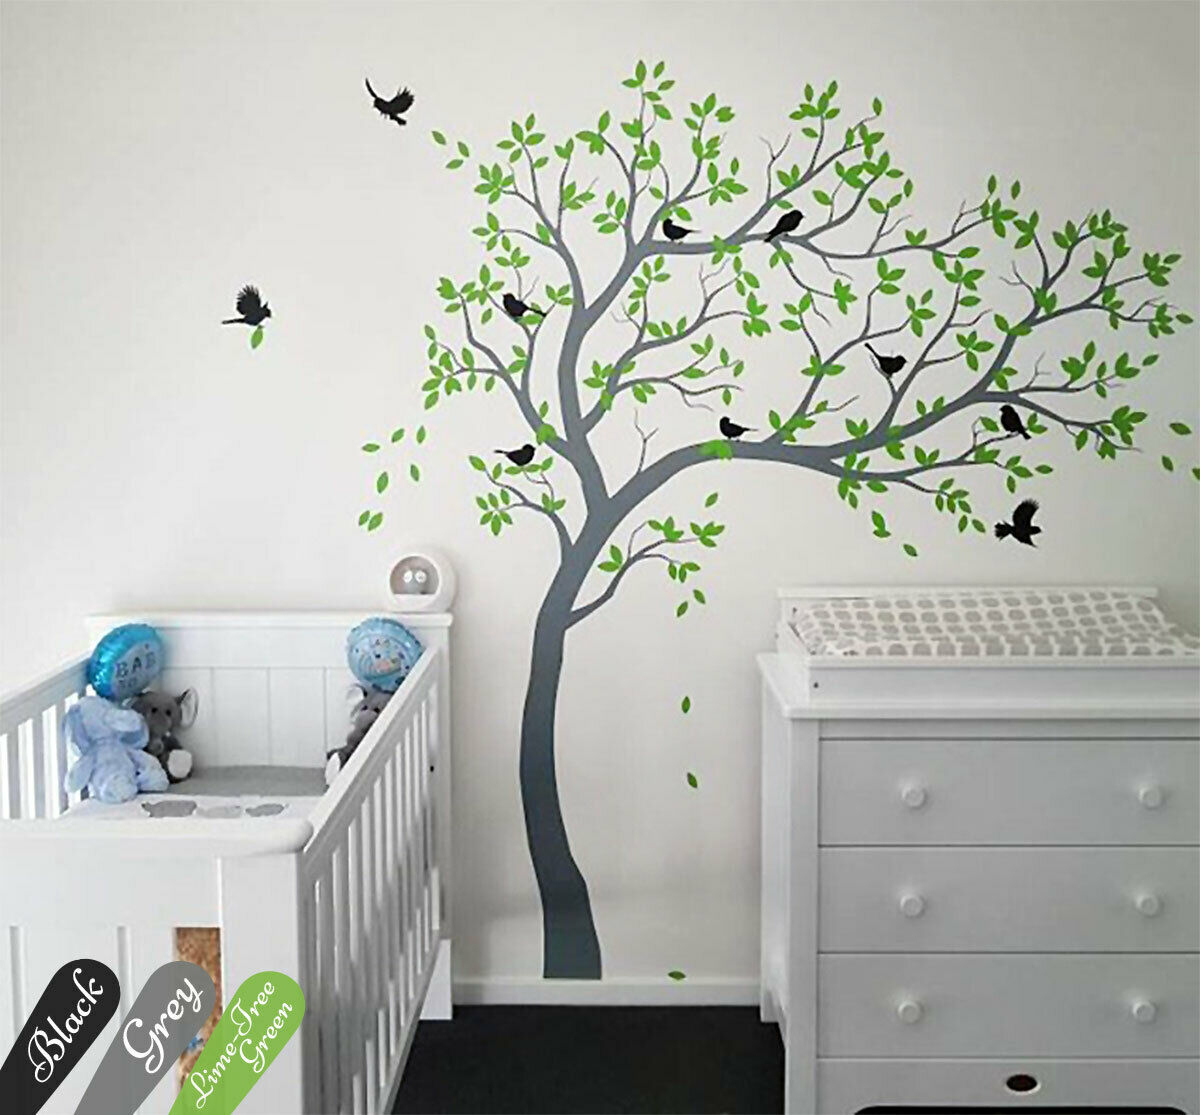 Details About Nursery Tree Wall Decal Mural Sticker Beautiful Large Tree Wall Decor Kw032r With Tree Wall Decor (View 15 of 30)